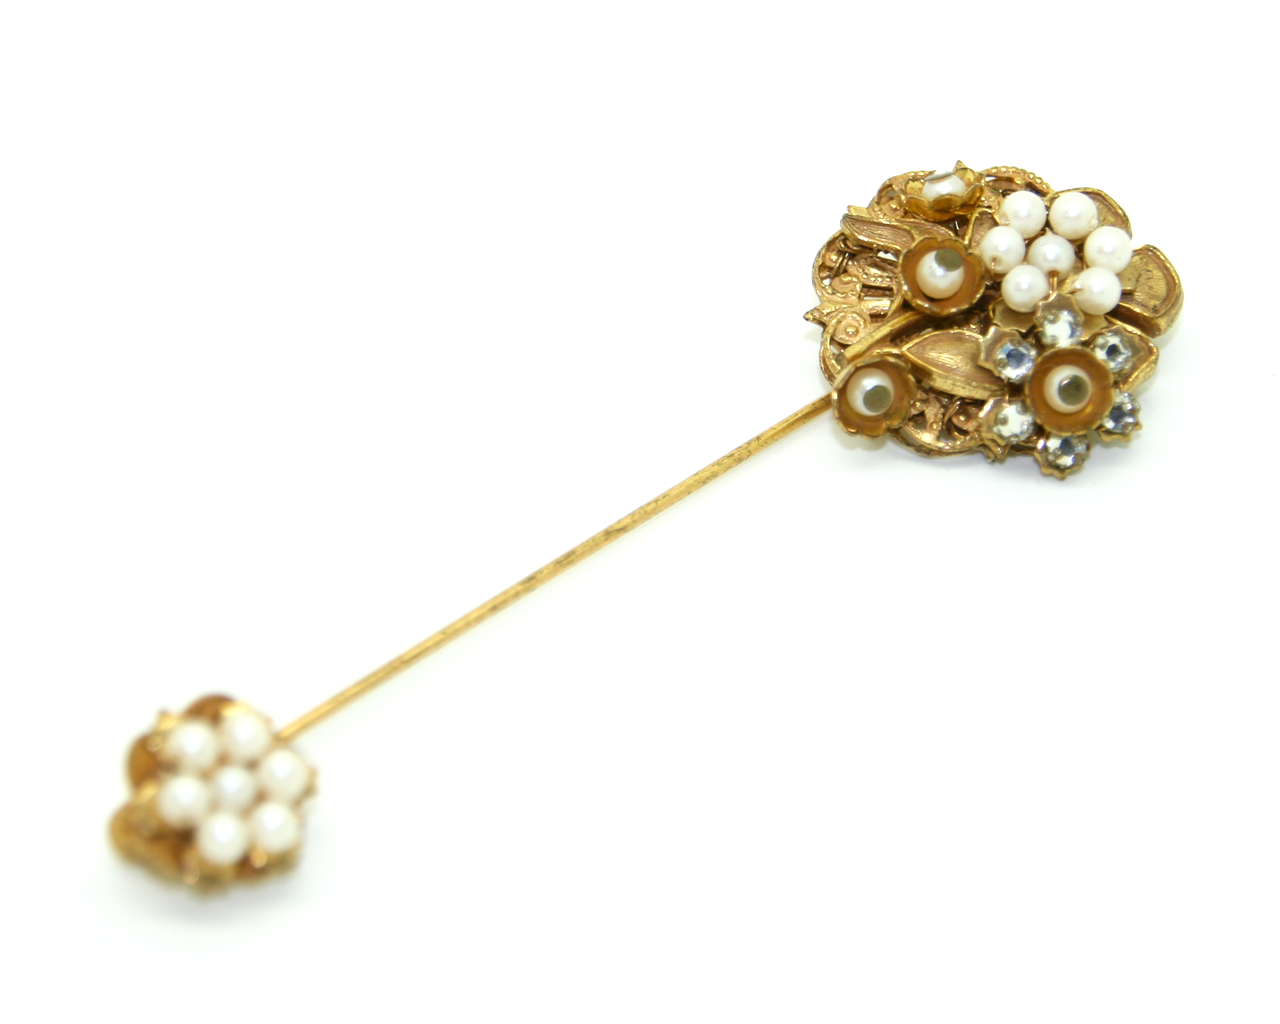 1950's STANLEY HAGLER pearl filligree and rhinestone stick pin